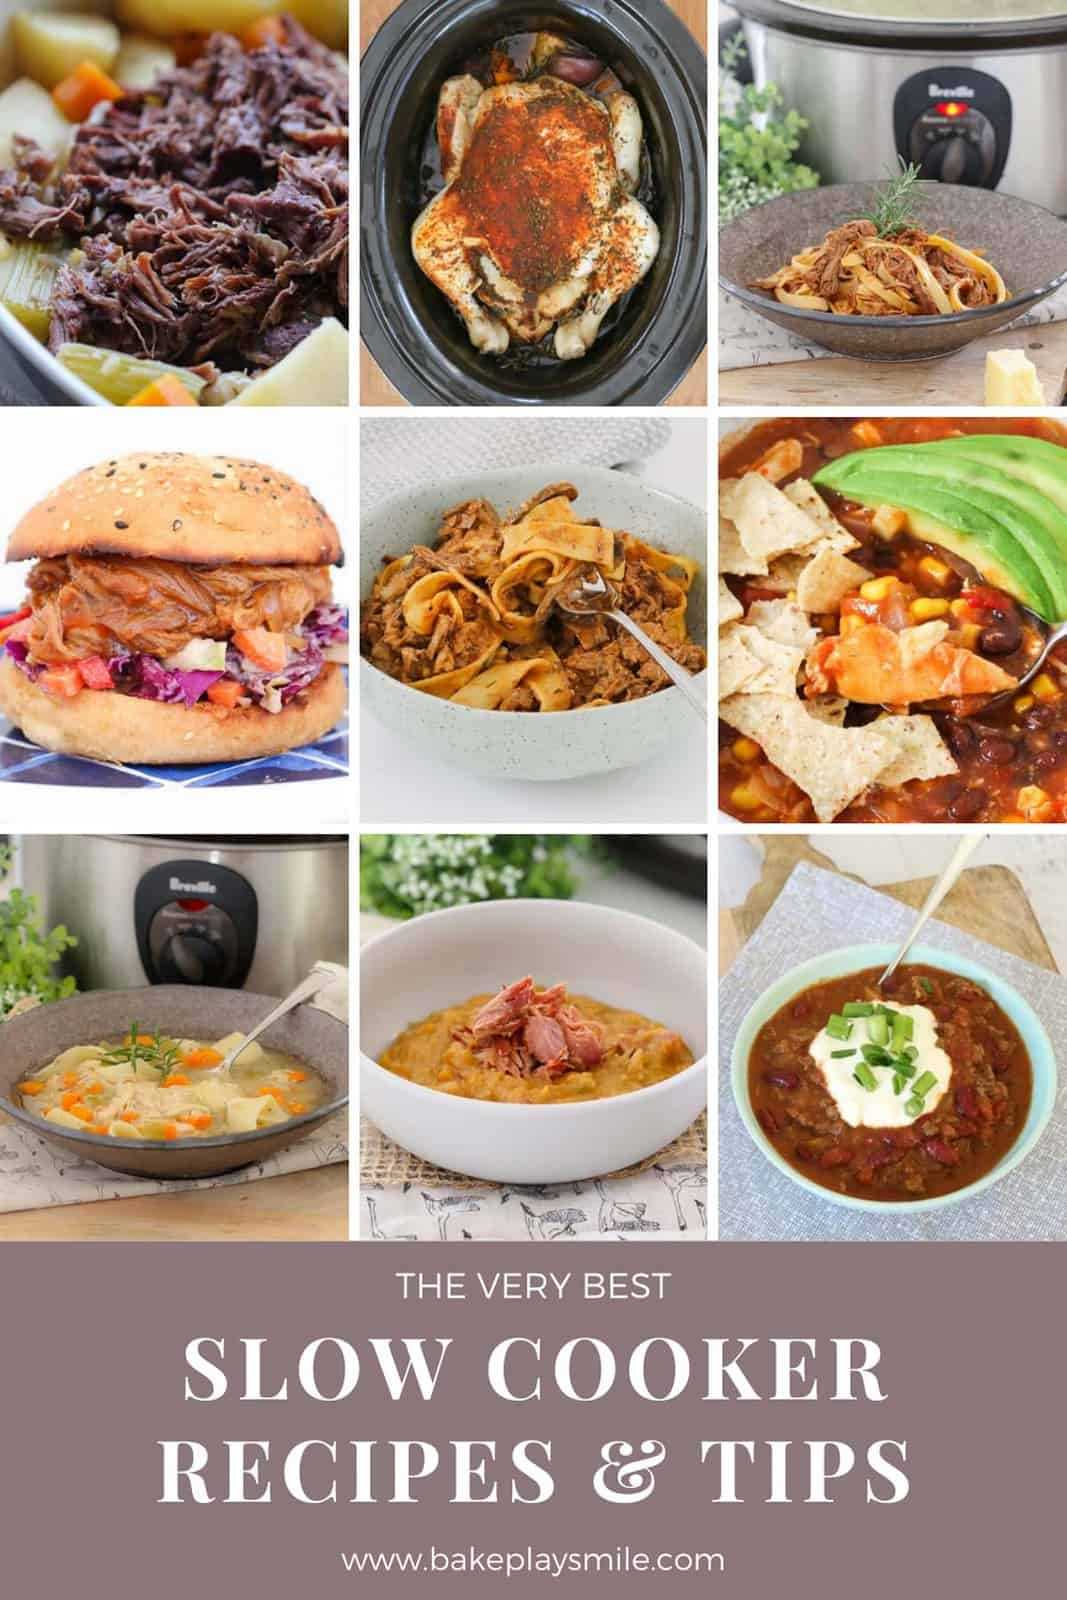 A collage of dinners that have been made using a slow cooker.